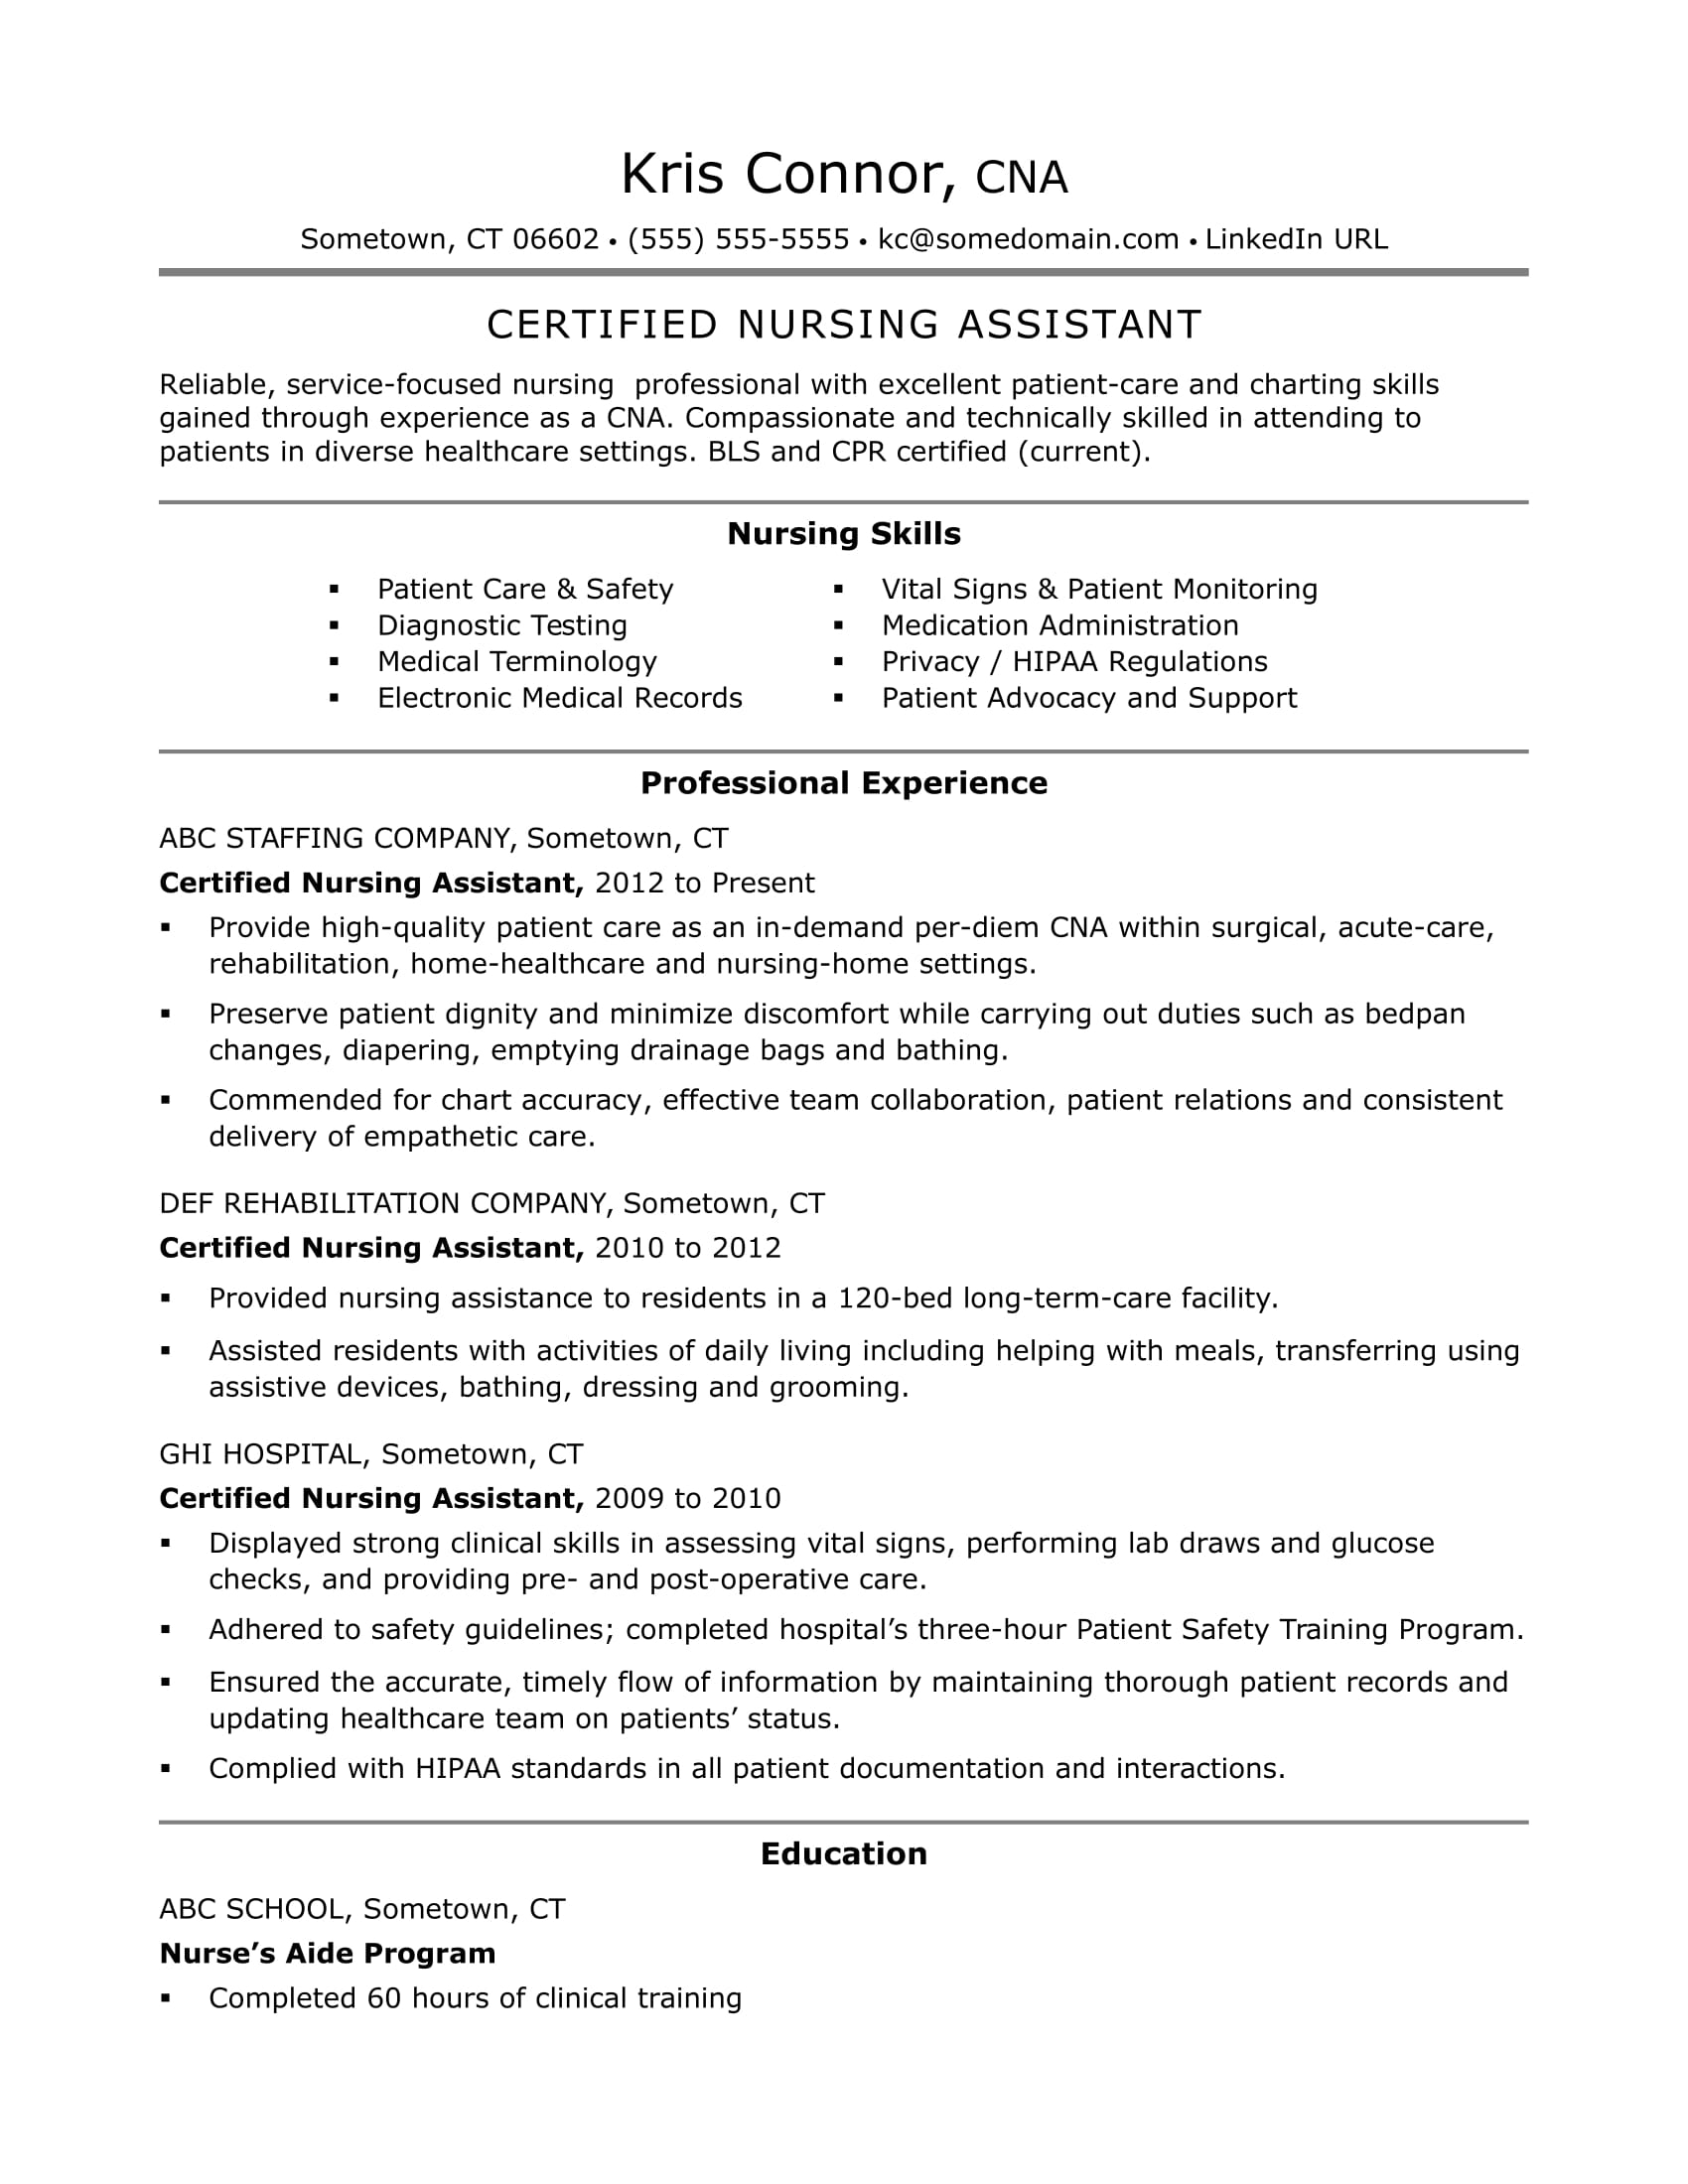 cna resume examples skills for cnas monster certified nursing assistant sample accounting Resume Certified Nursing Assistant Resume Sample